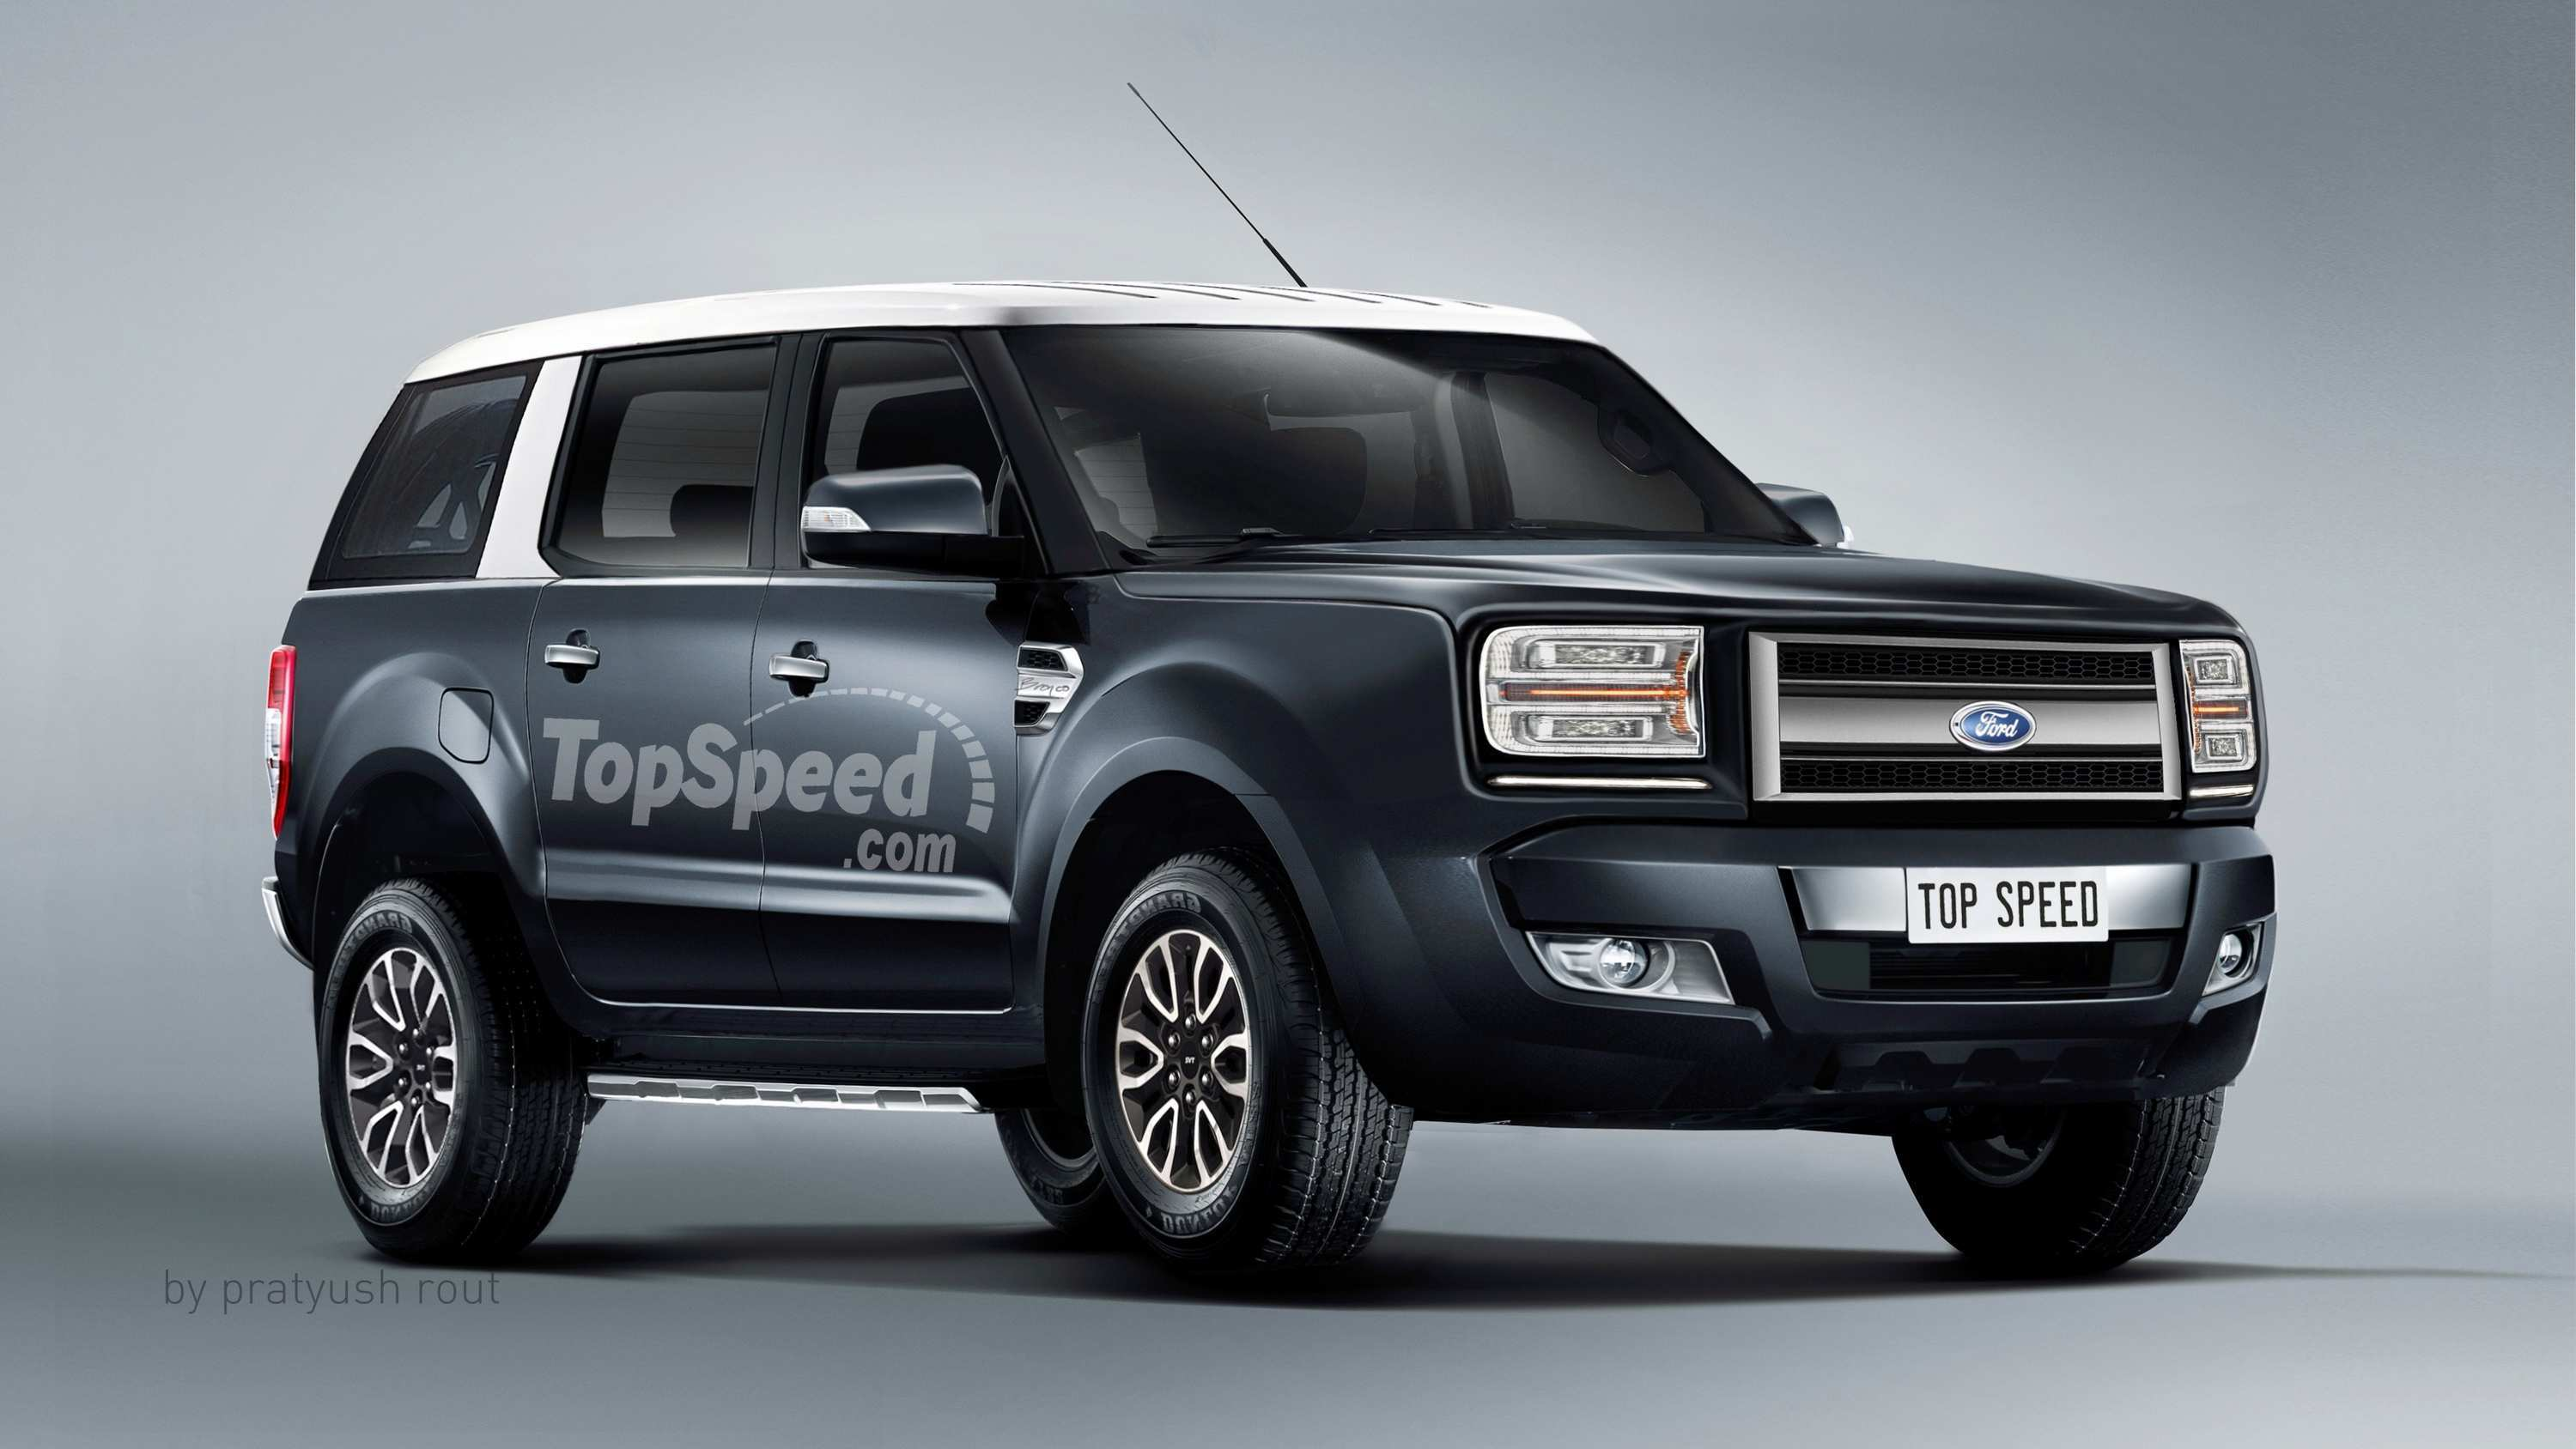 30 All New Ford Baby Bronco 2020 Research New for Ford Baby Bronco 2020